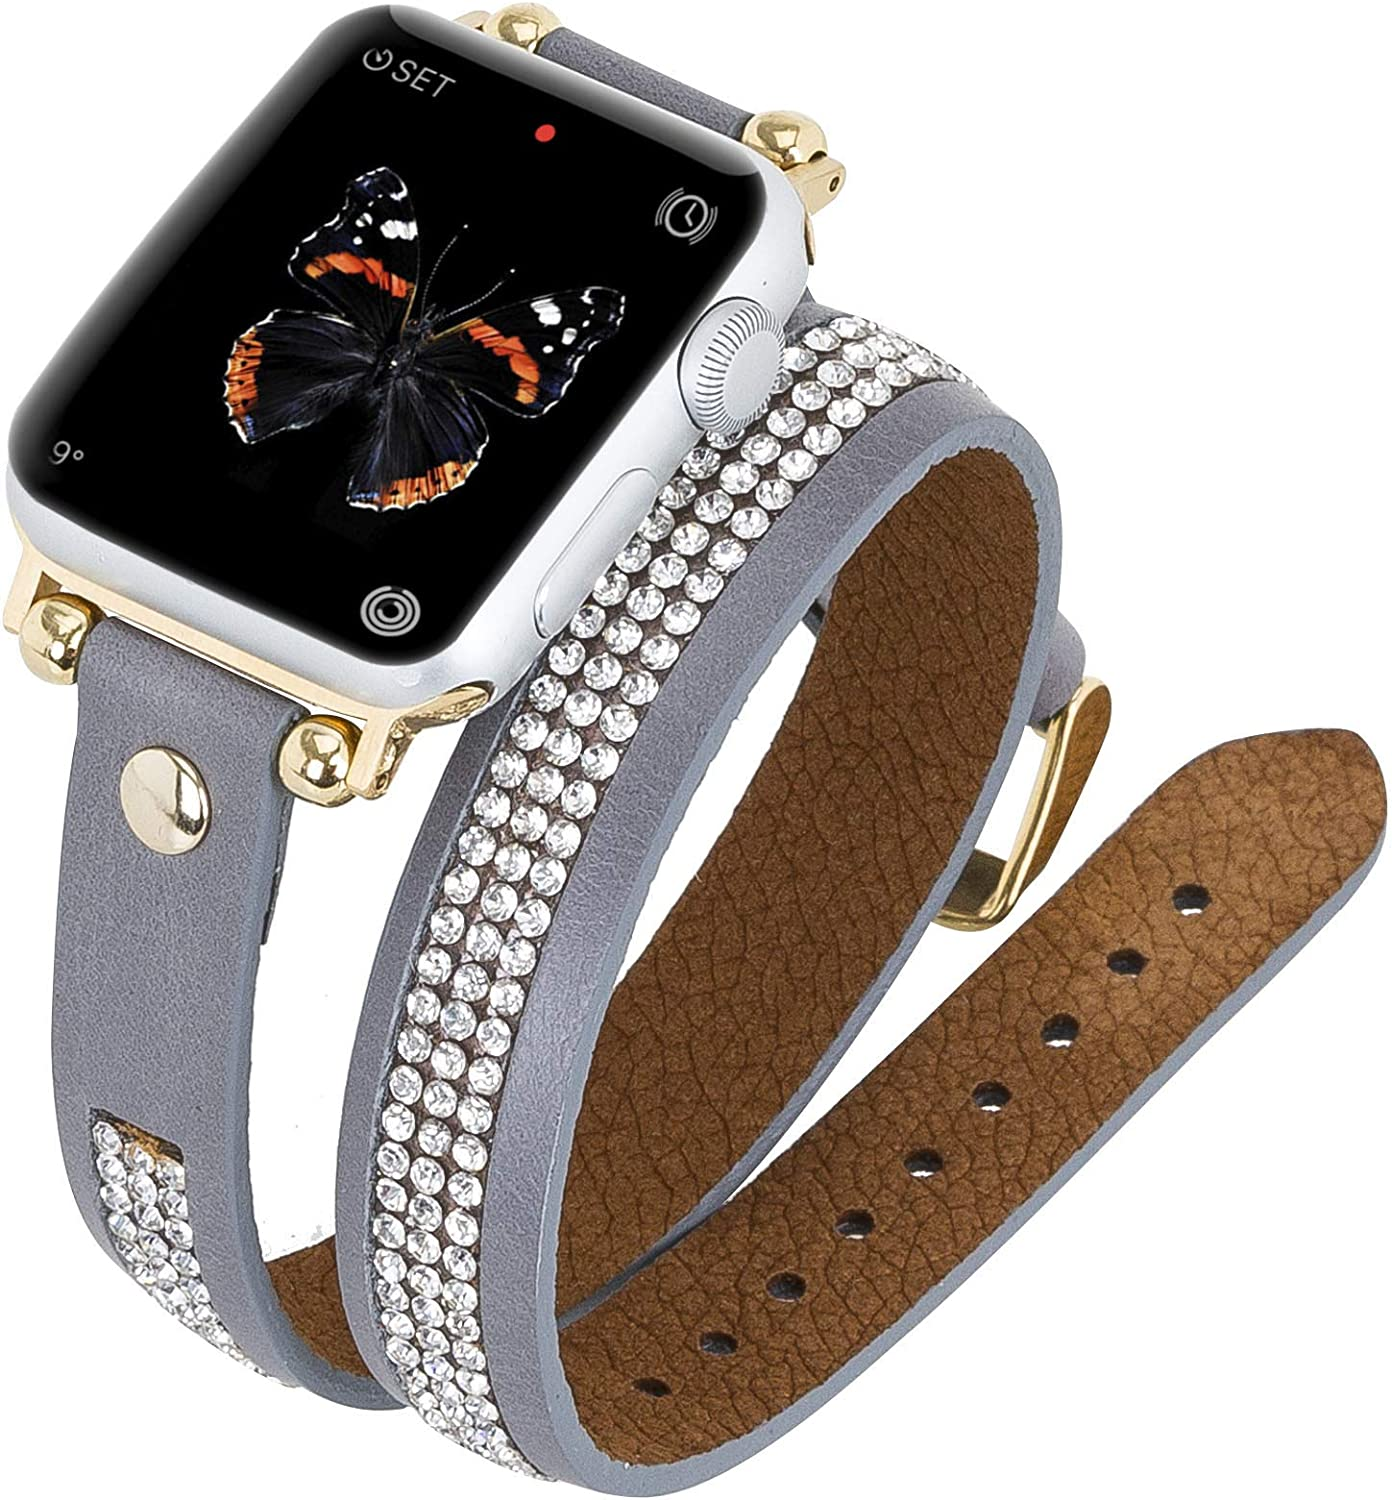 Venito Livorno Double Wrap Leather Slim Watch Band with Rhinestones Compatible w/Apple Watch Series 1, 2, 3, 4, 5, 6 with Stainless Steel Hardware (Gray w/Gold Connector & Clasp, 42mm-44mm)